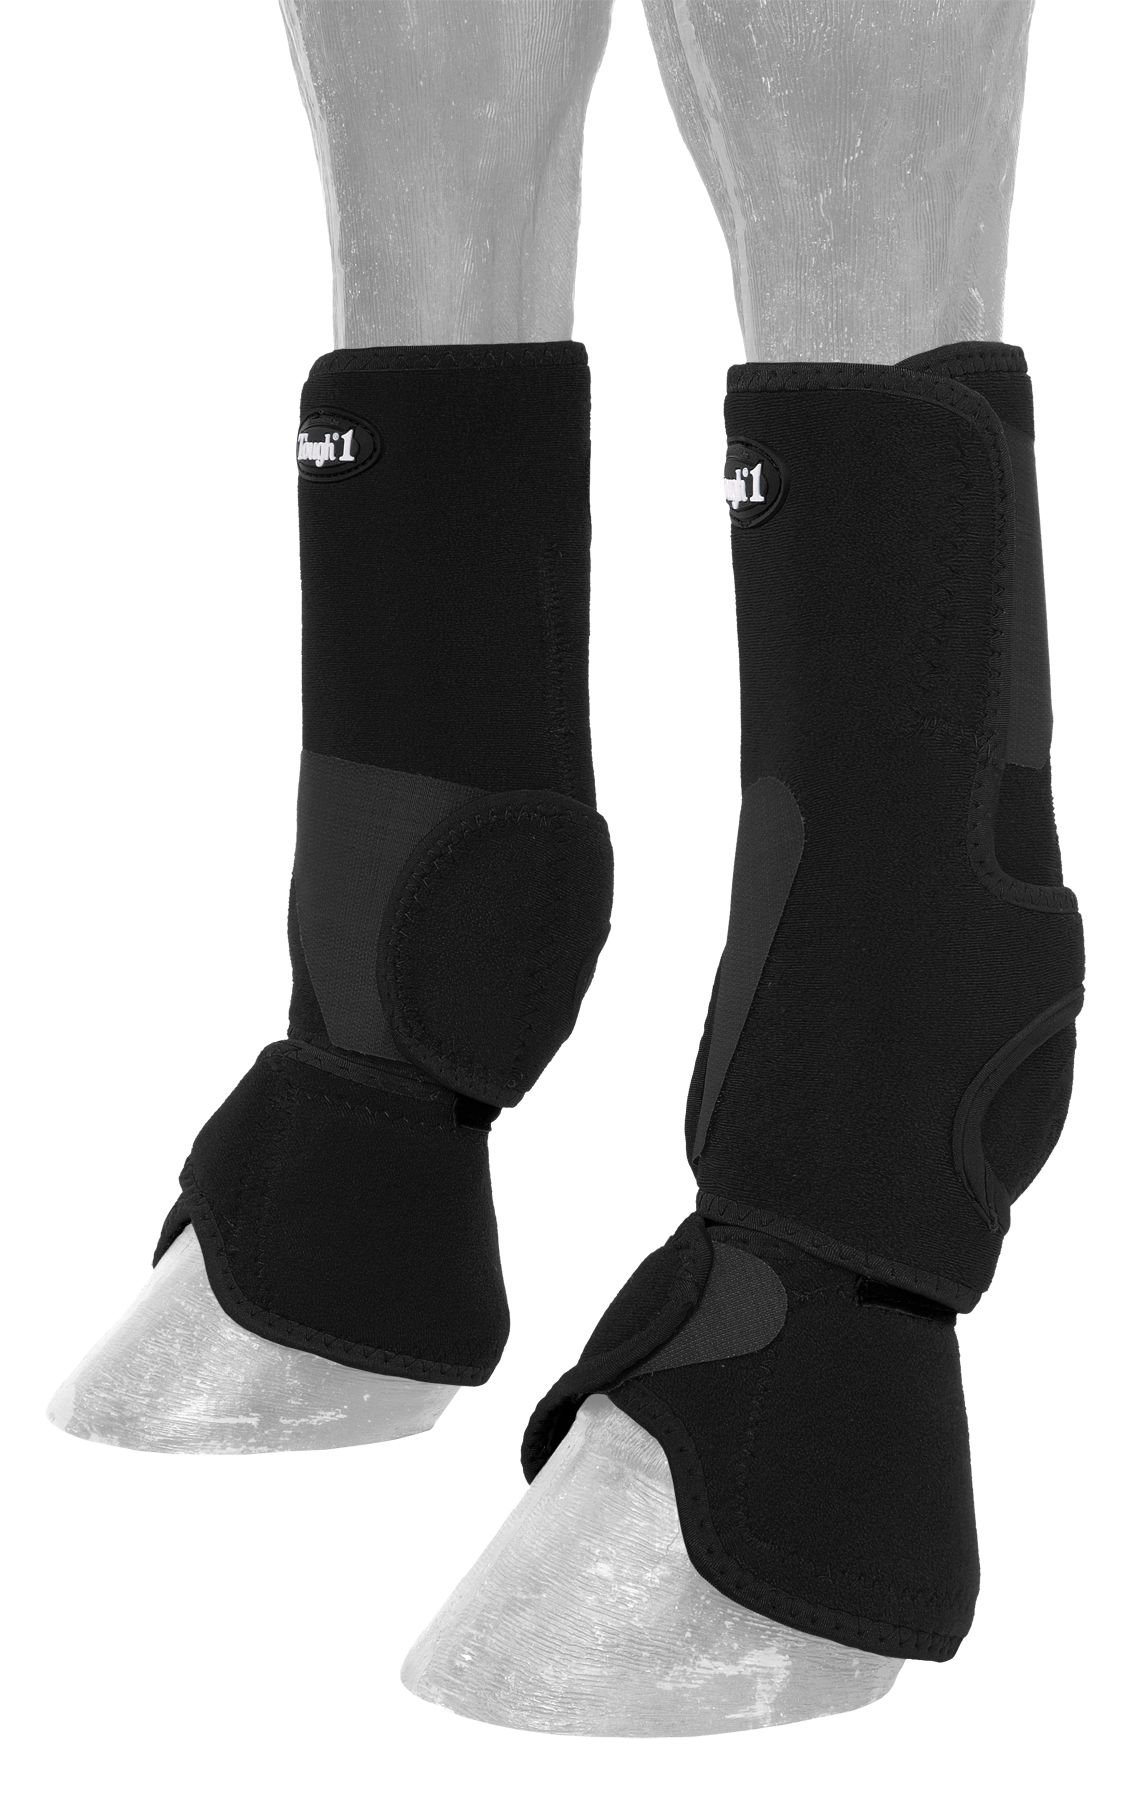 Tough 1 Performers 1st Choice Combo Boots, Black, Large